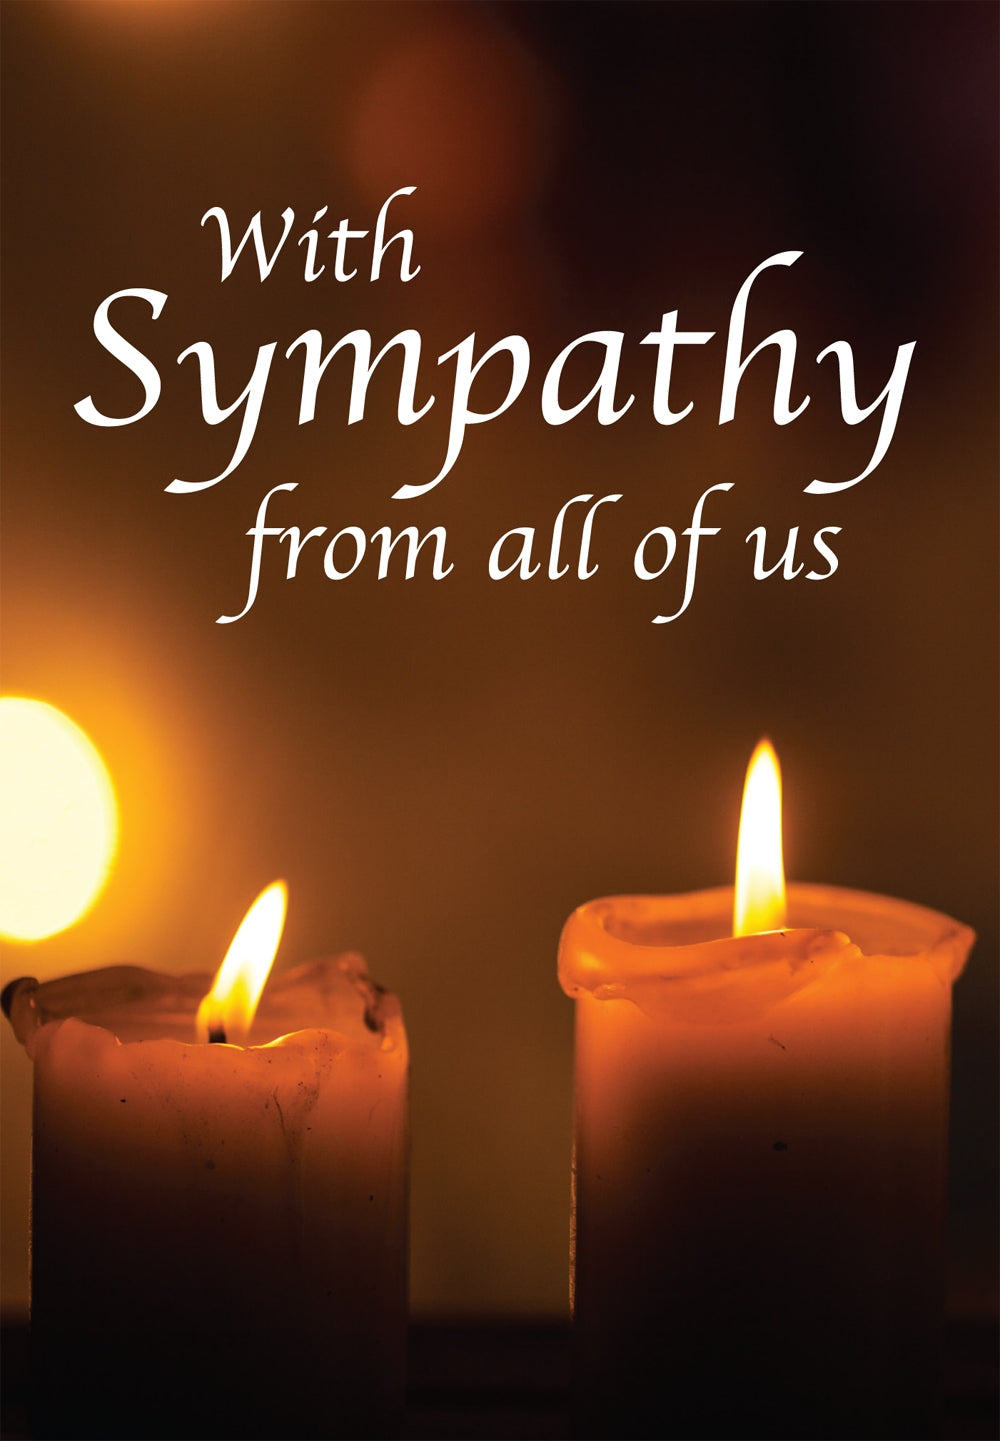 With Sympathy - Candles Std Card Gloss (6 Pack)With Sympathy - Candles Std Card Gloss (6 Pack)